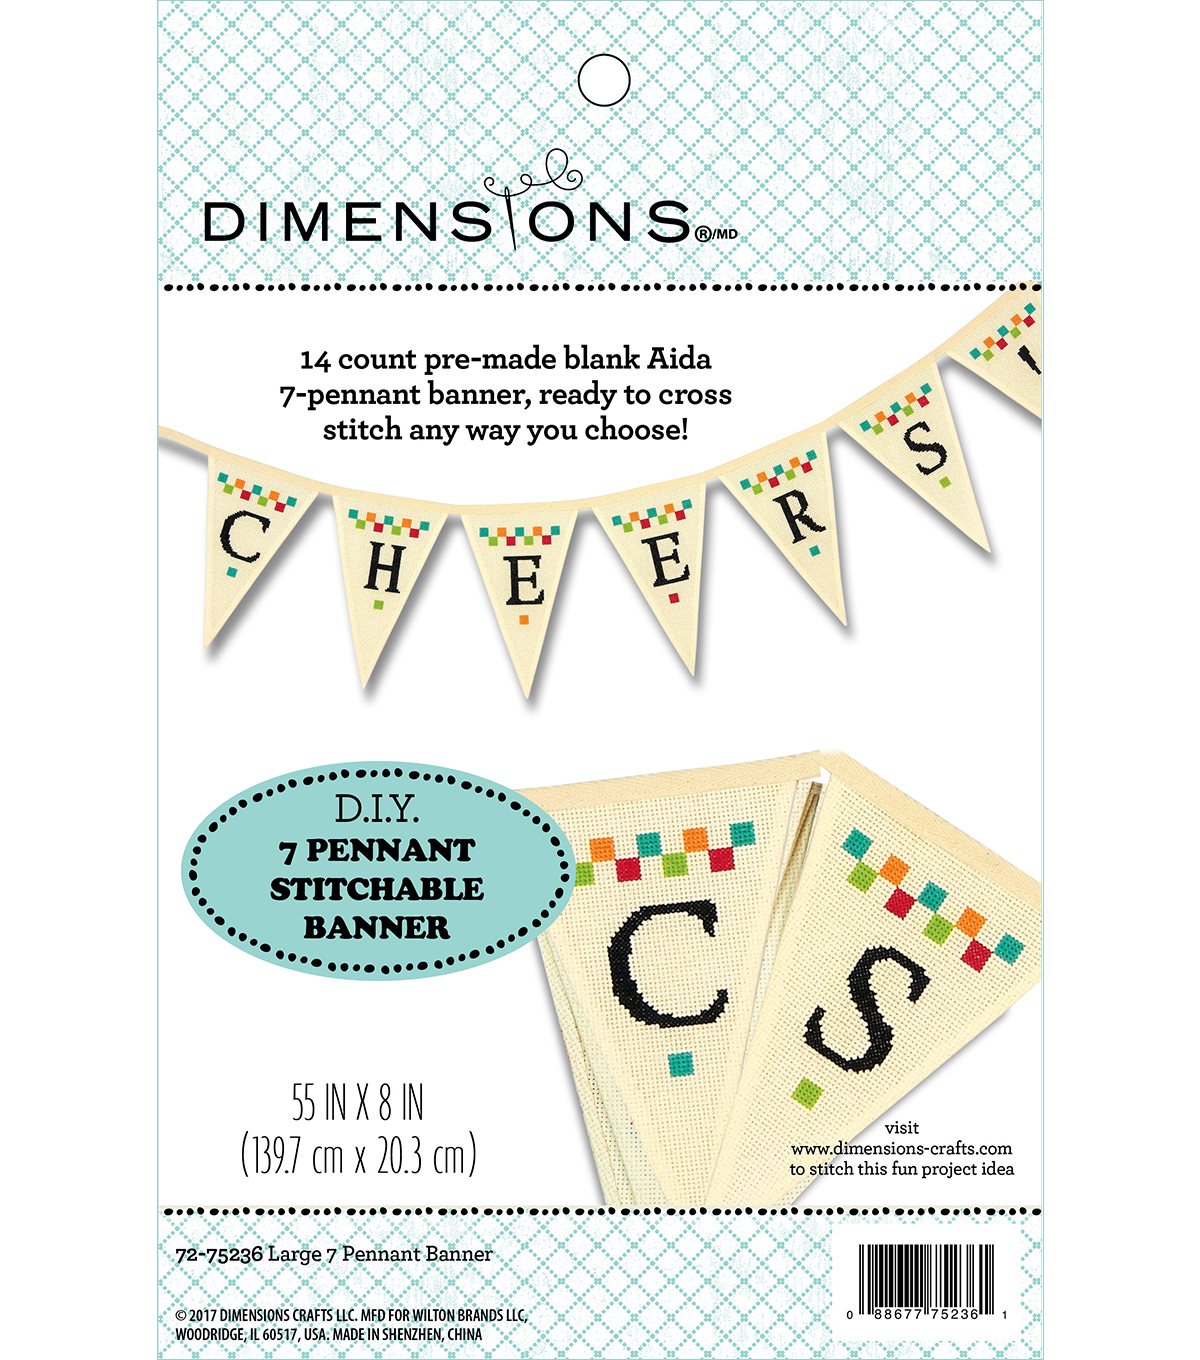 Dimensions® 55'' x 8'' DIY Pennant Stitchable Banner